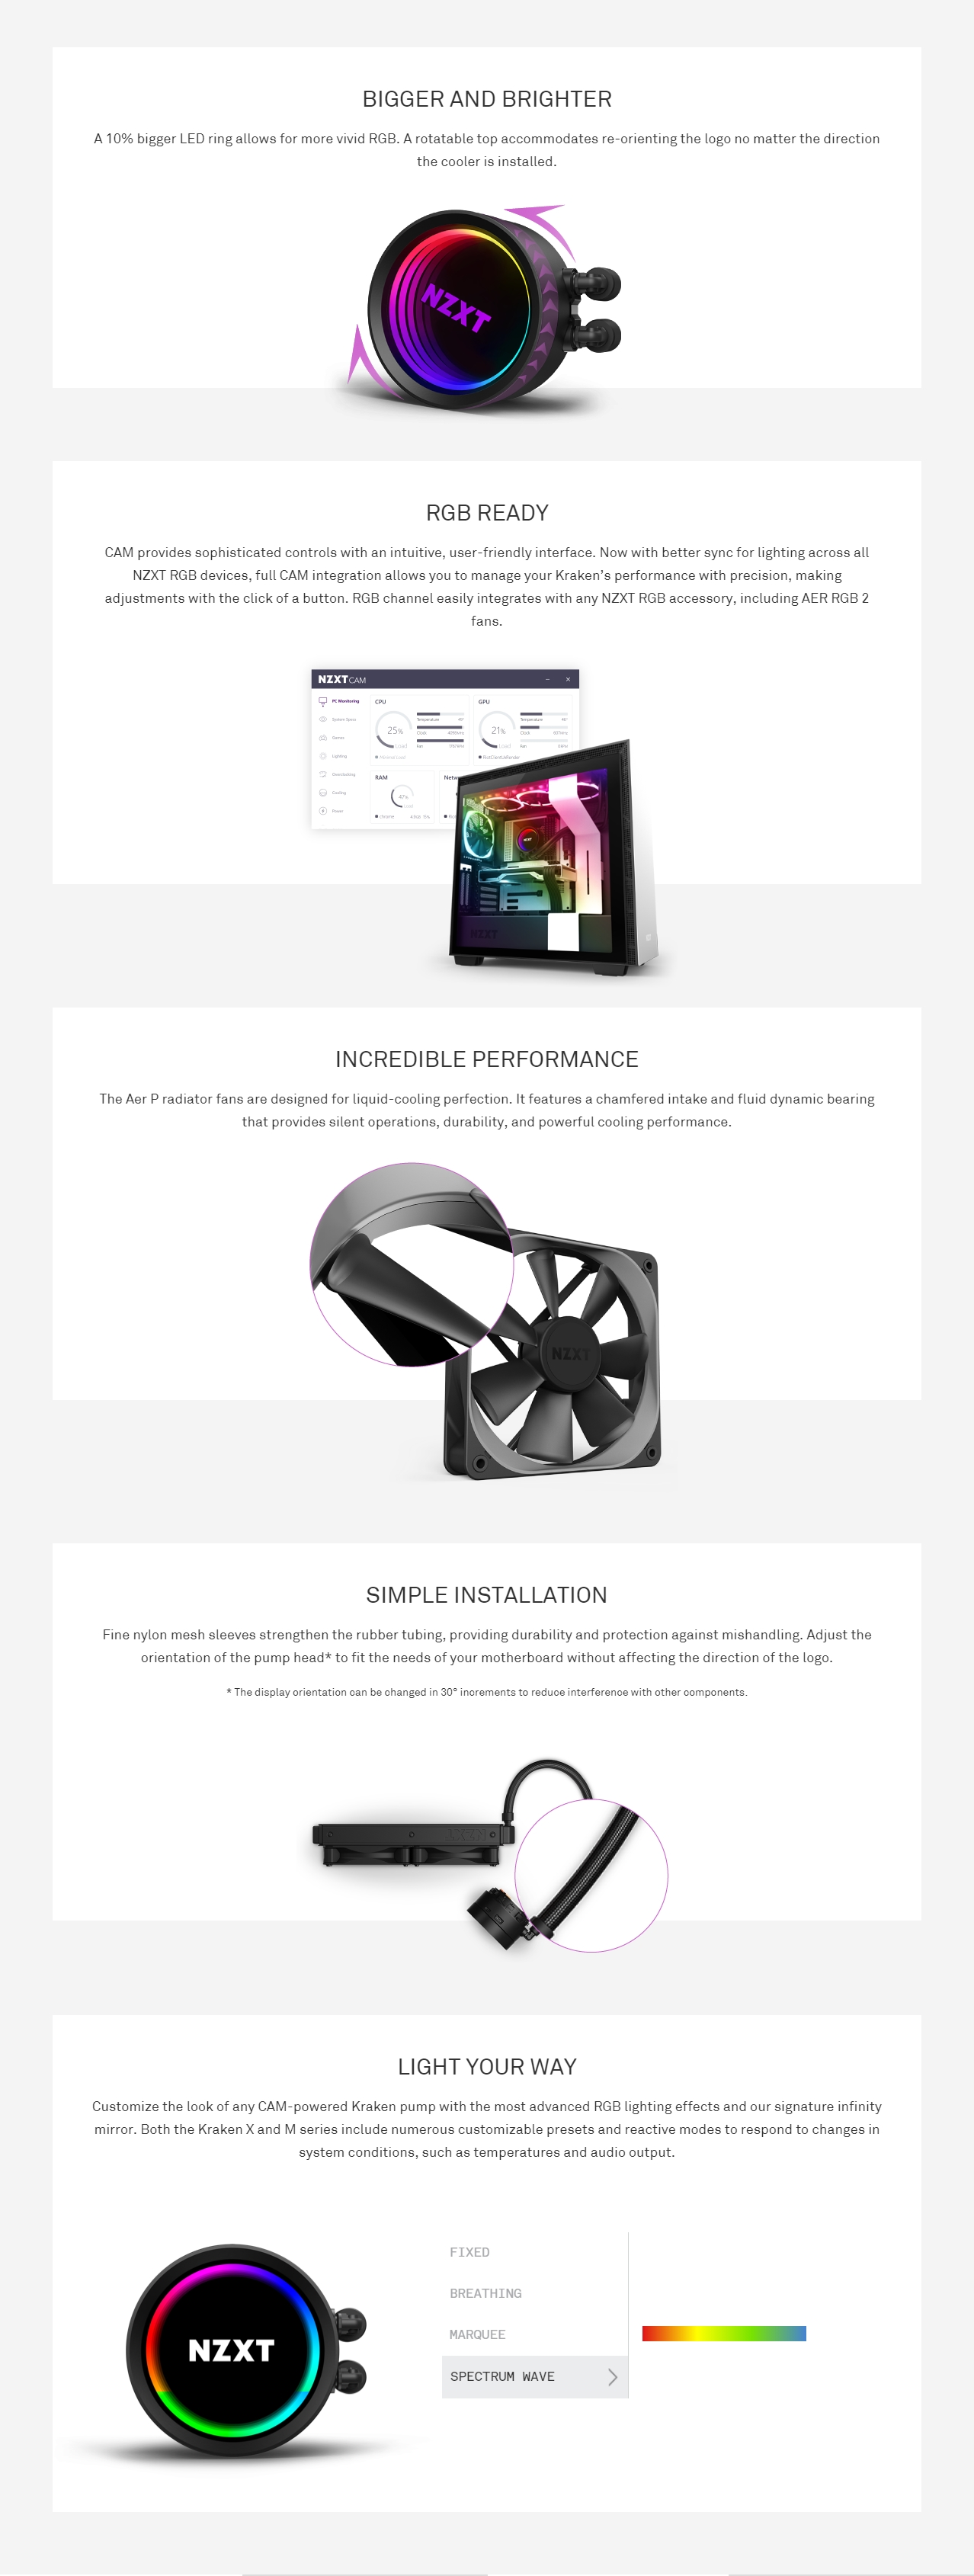 A large marketing image providing additional information about the product NZXT Kraken X63 RGB 280mm AIO Liquid CPU Cooler - Additional alt info not provided